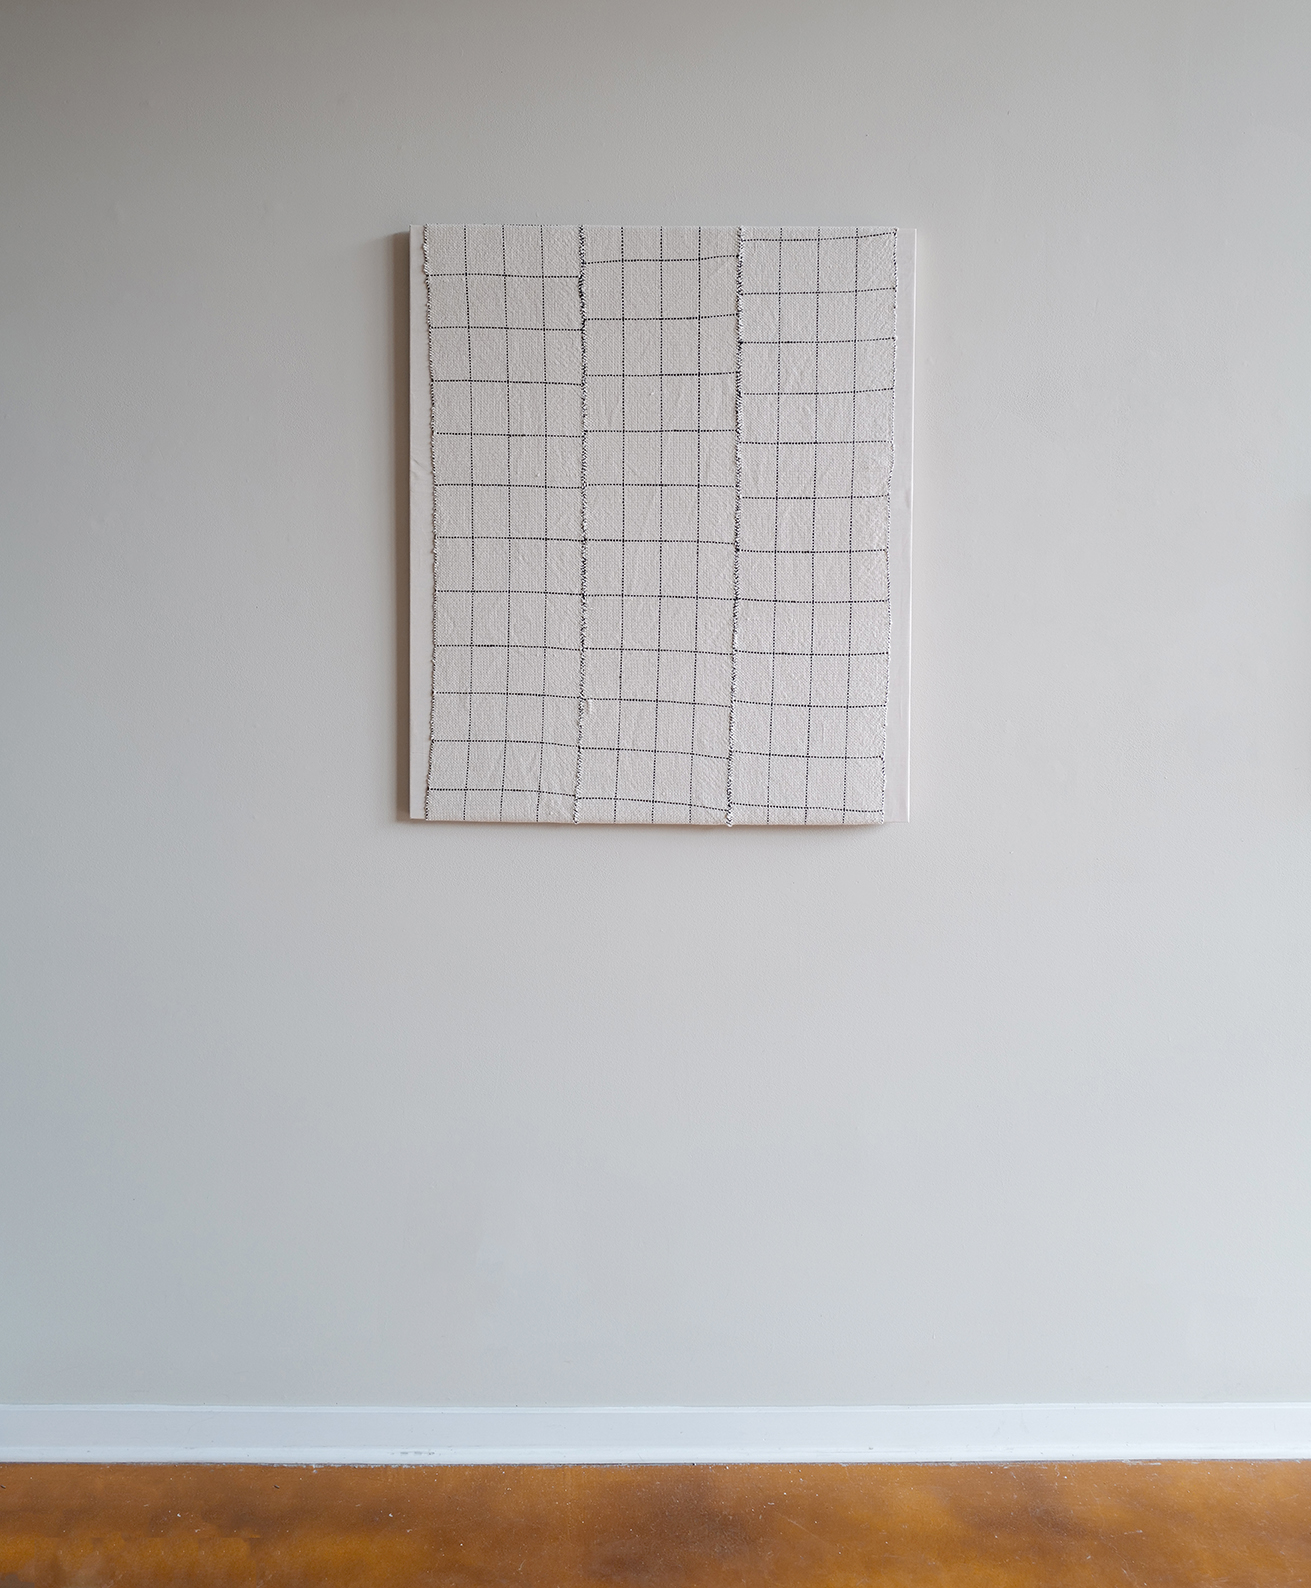 Kayla_Powers_Natural_Grid_40x34_s